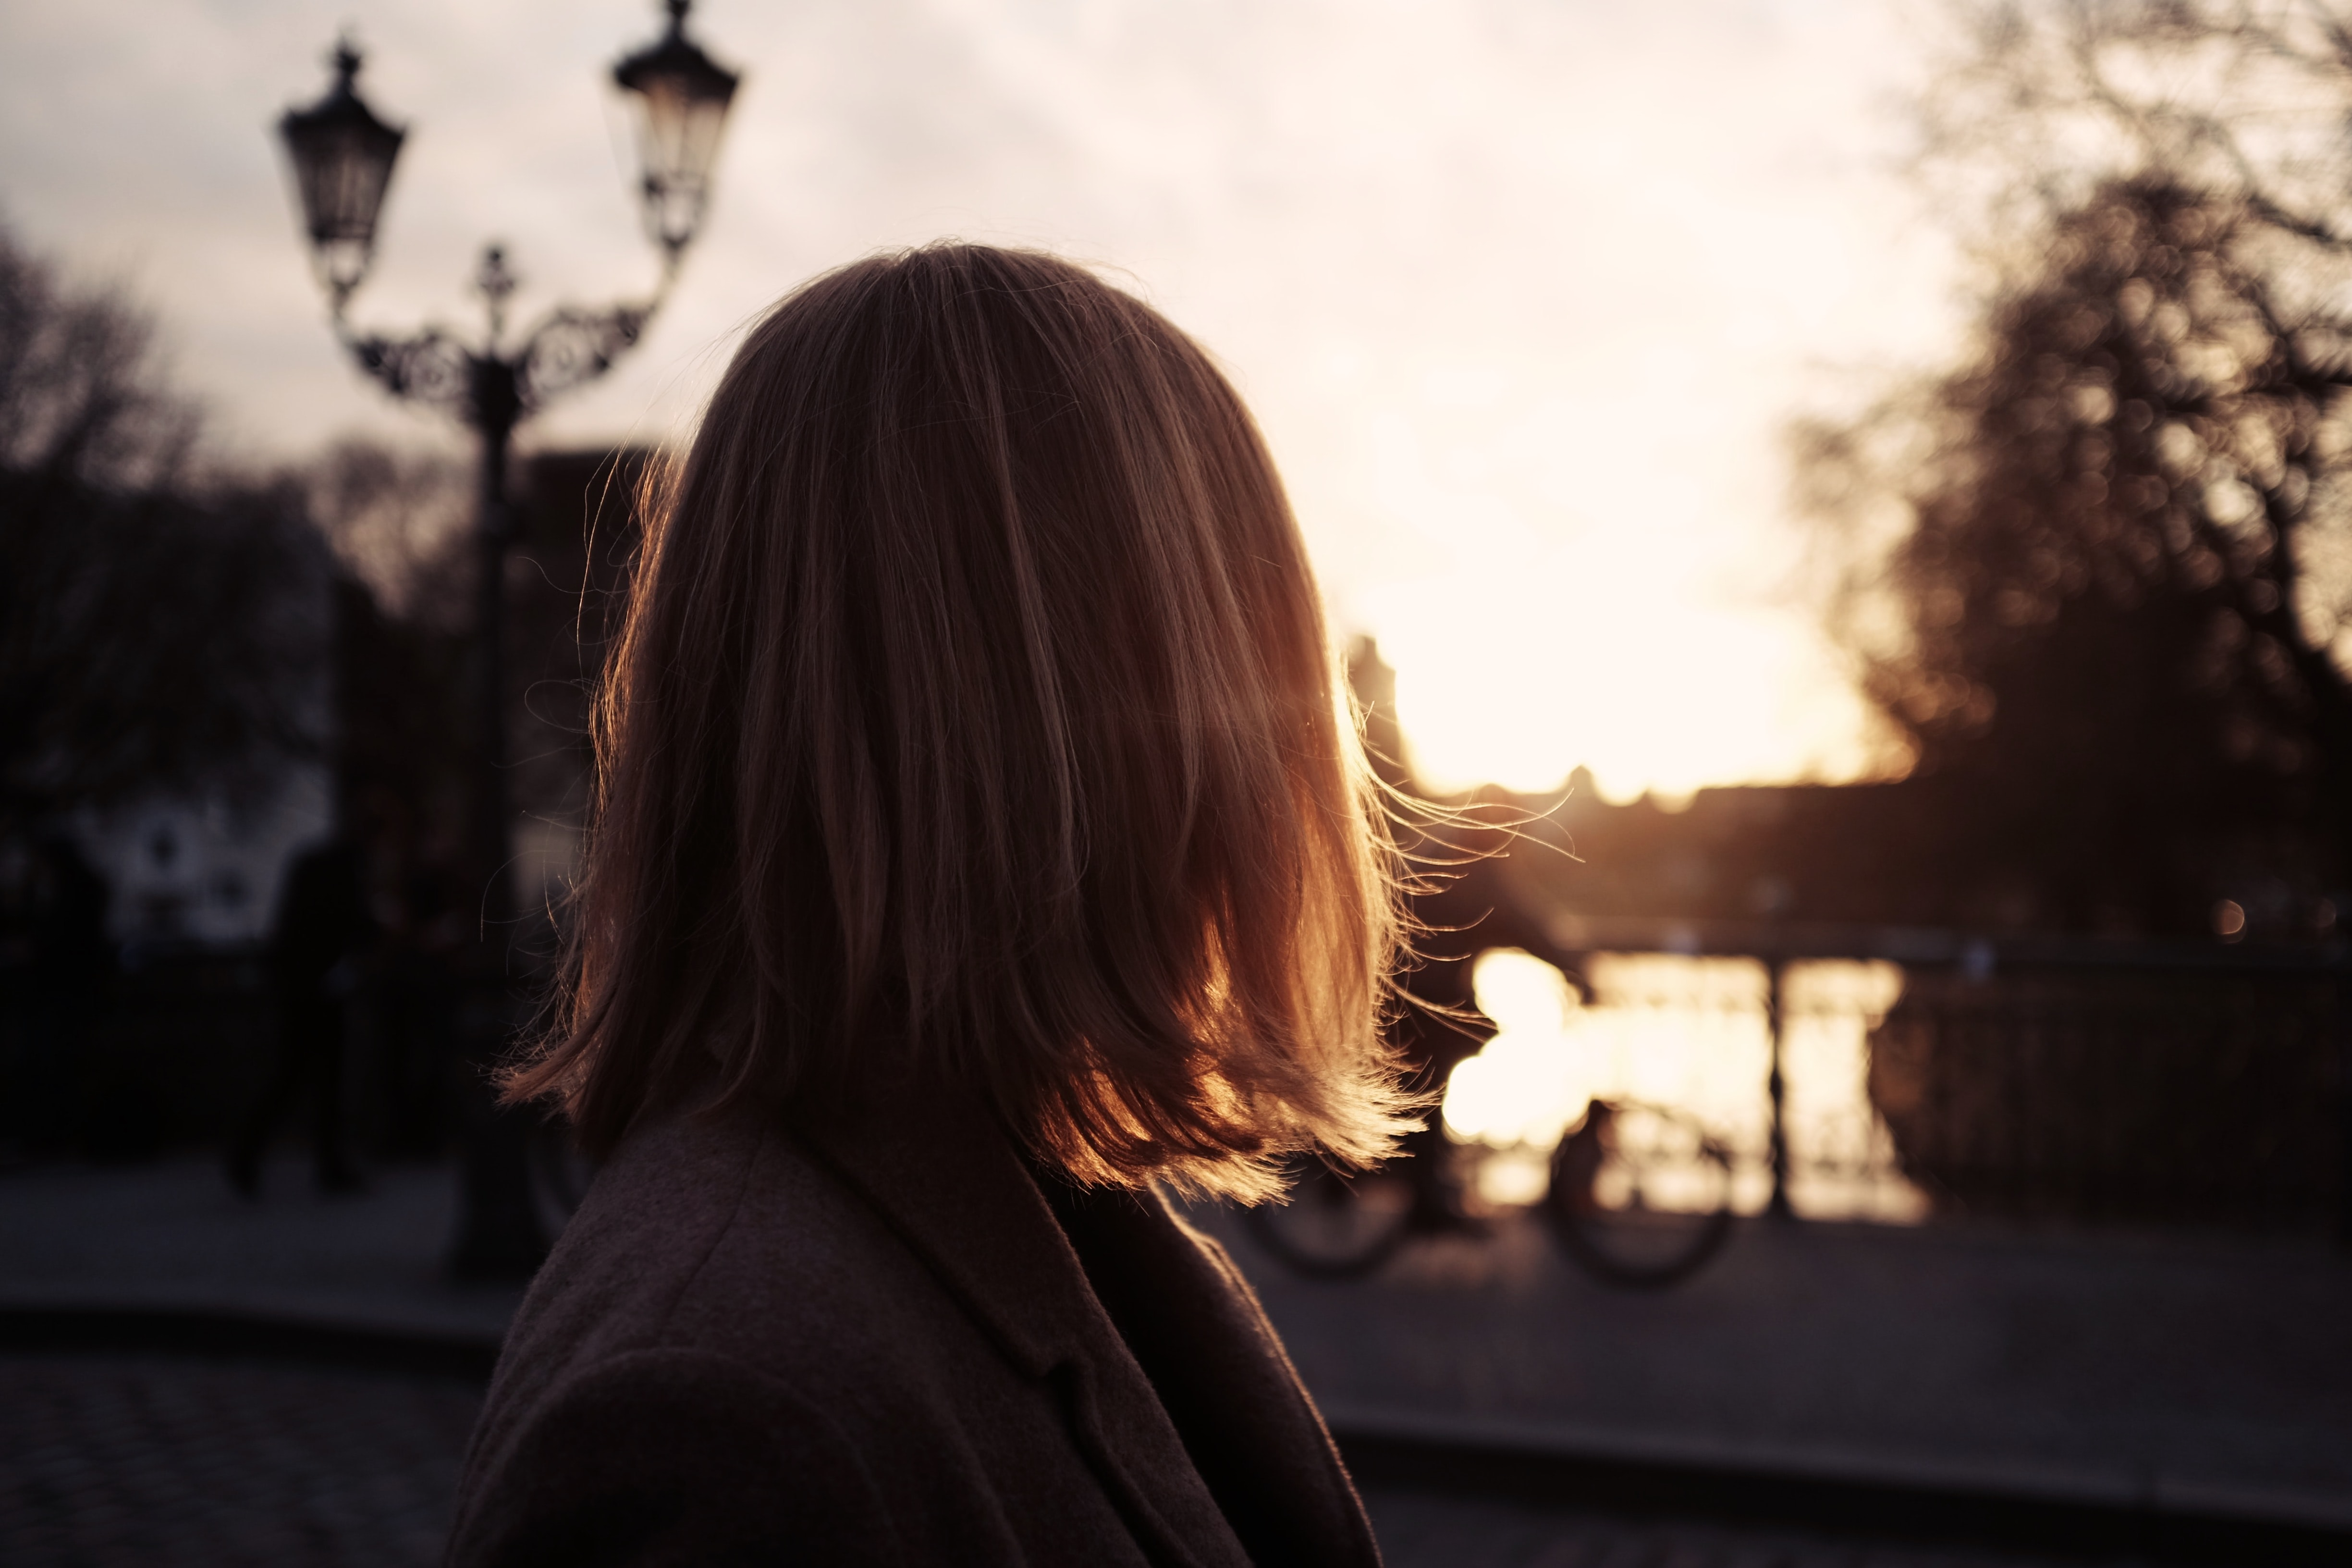 A woman with short blond hair looks away from the camera during sunset in Admiralsbrücke.